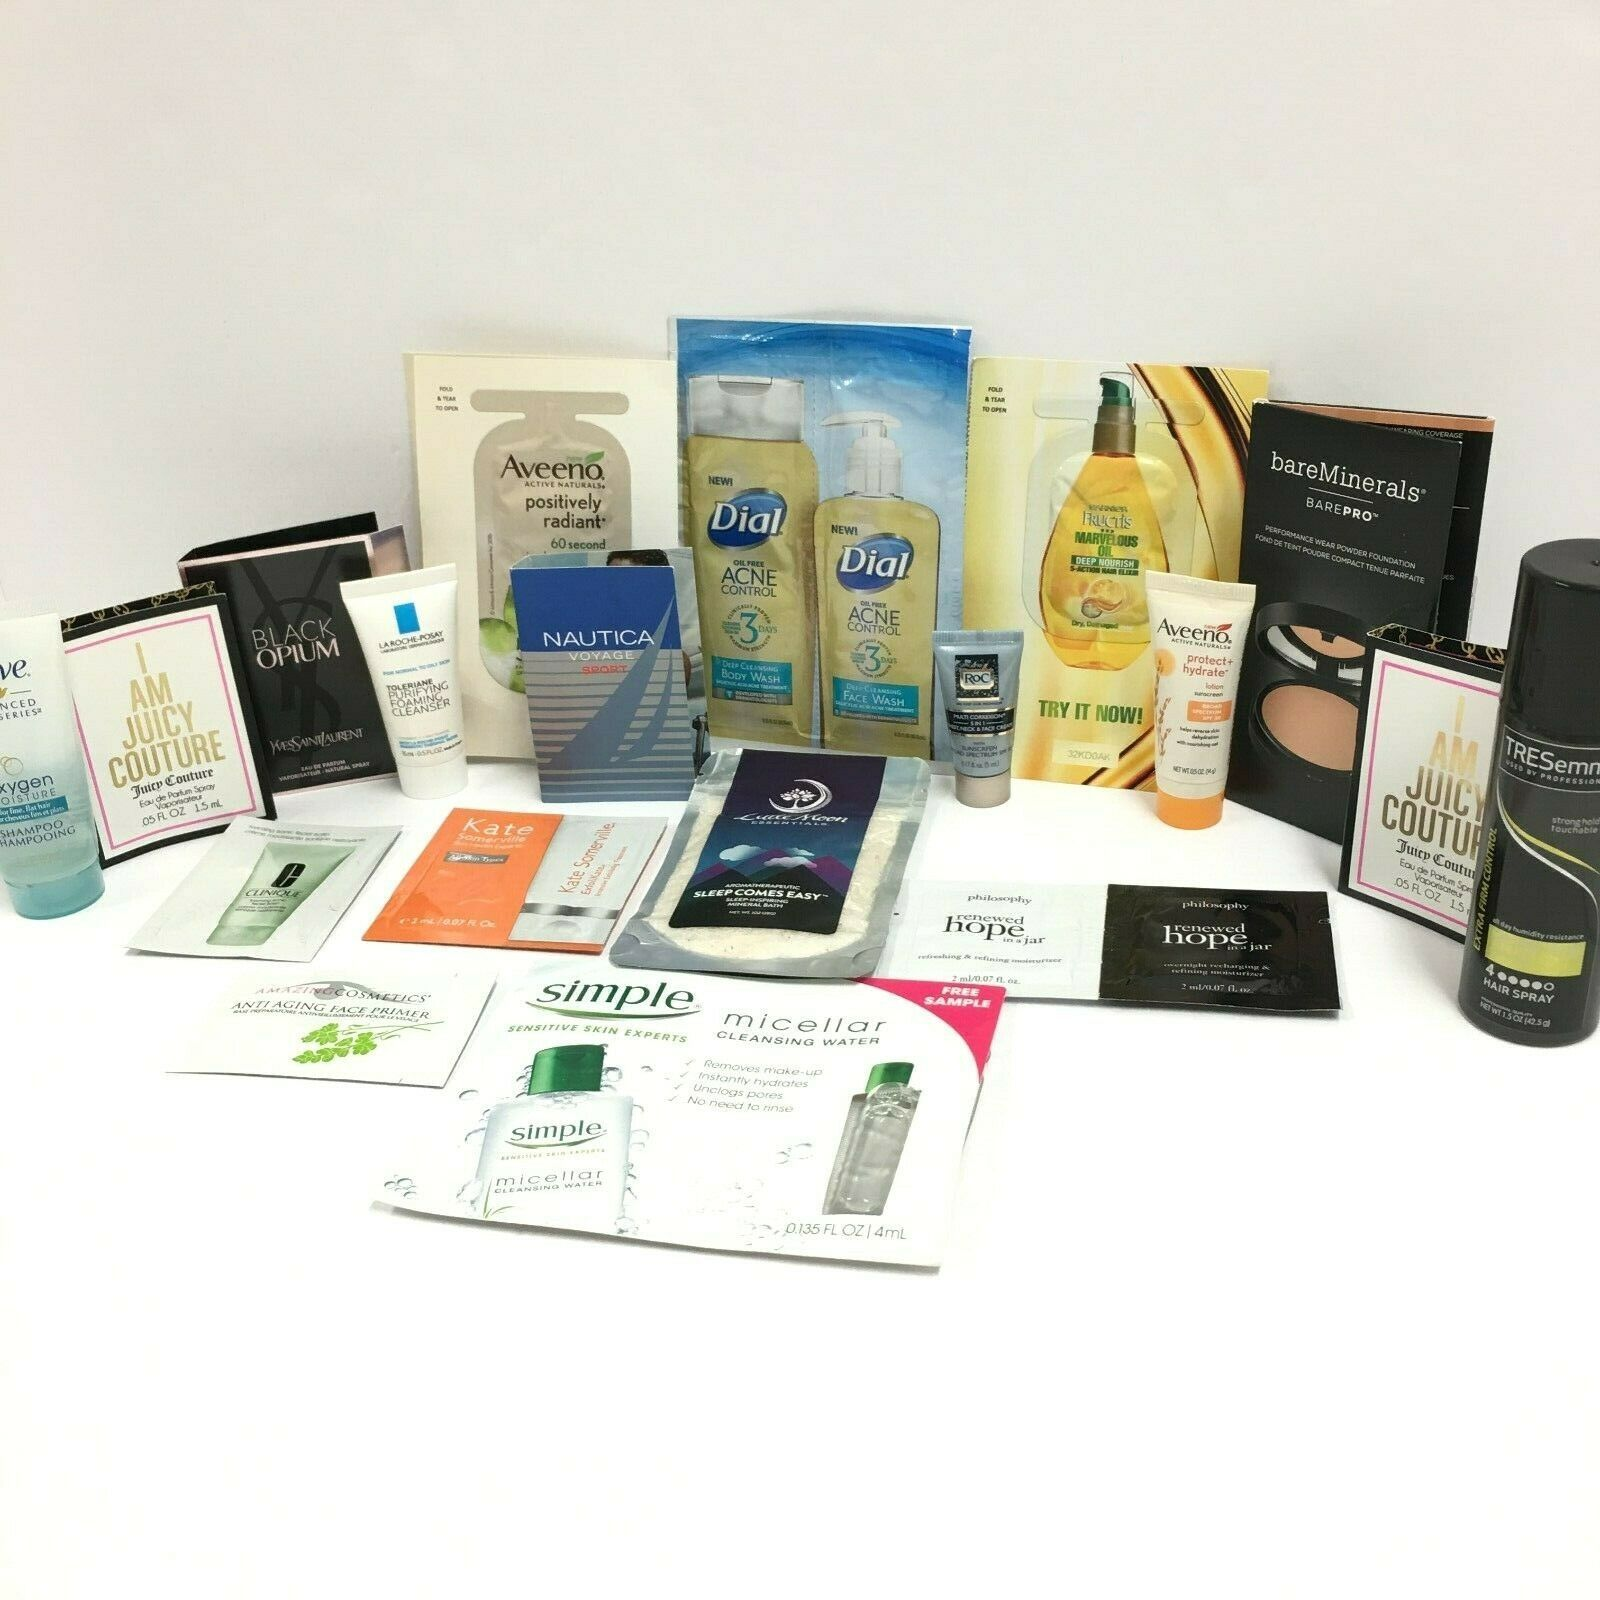 Lot of 22 Travel Size Cosmetics | Clinique, TRESemme, Dove, Aveeno, and More! - $17.56